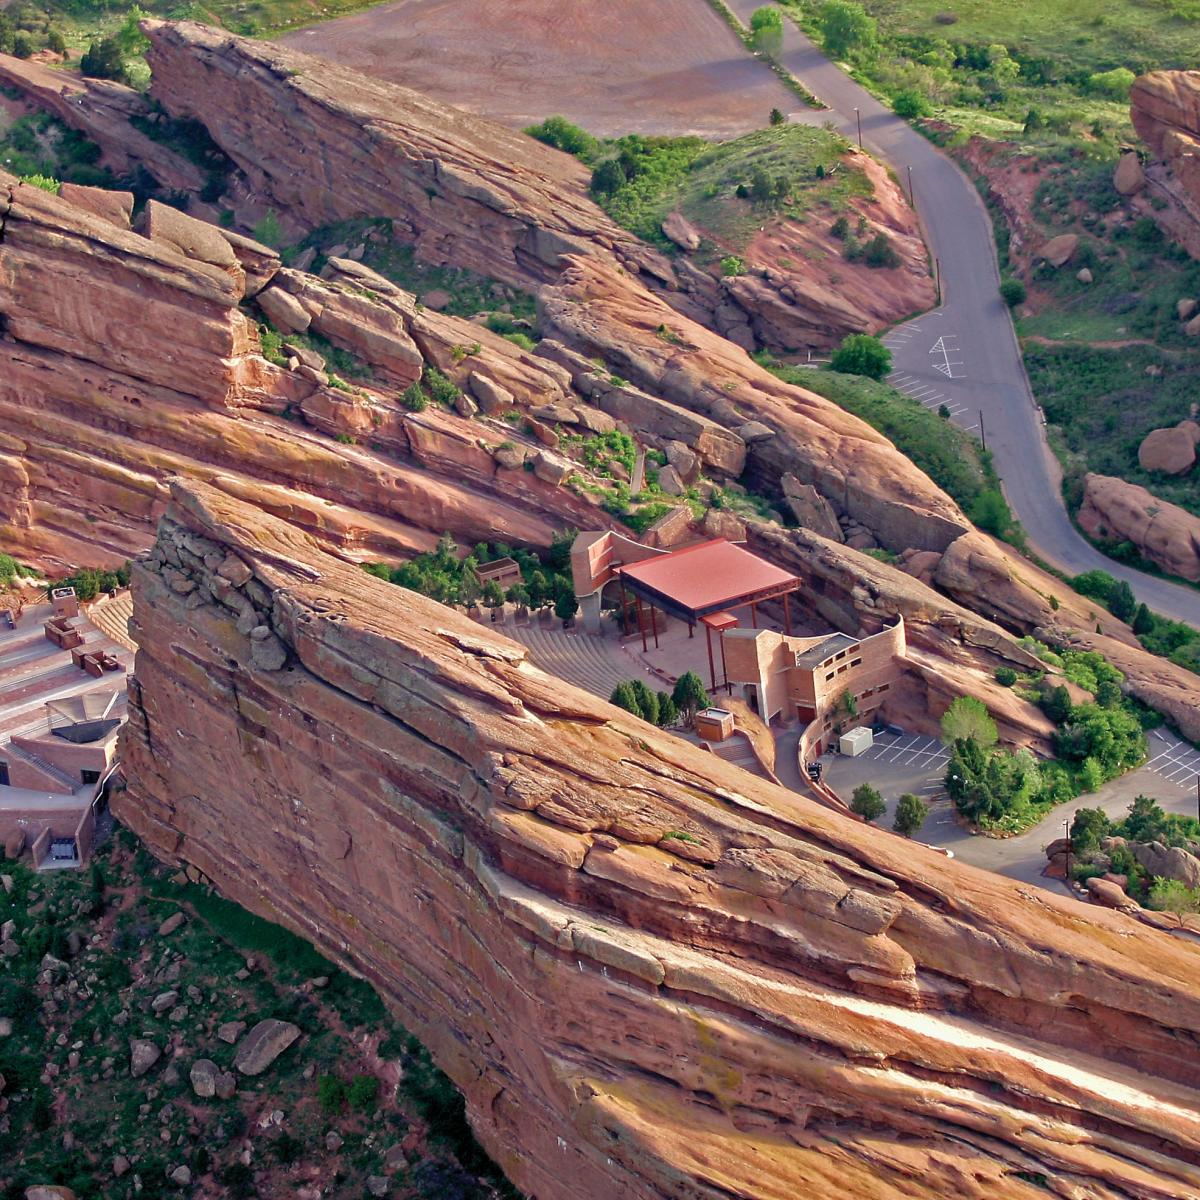 Aerial view of Red Rocks Park & Amphitheater